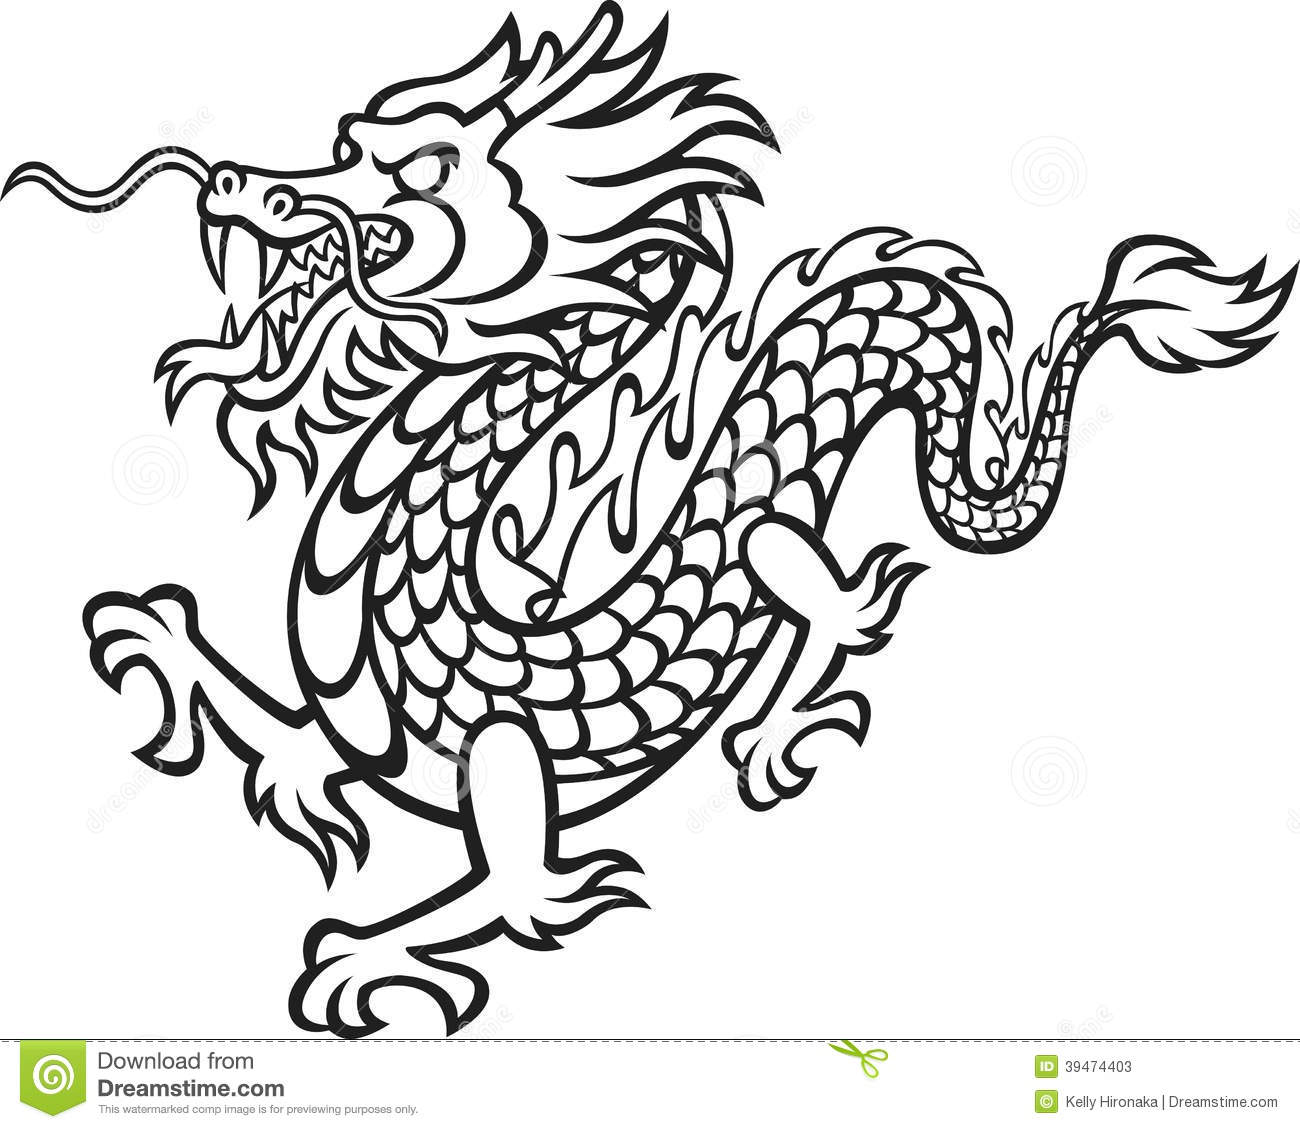 Bin coloring page